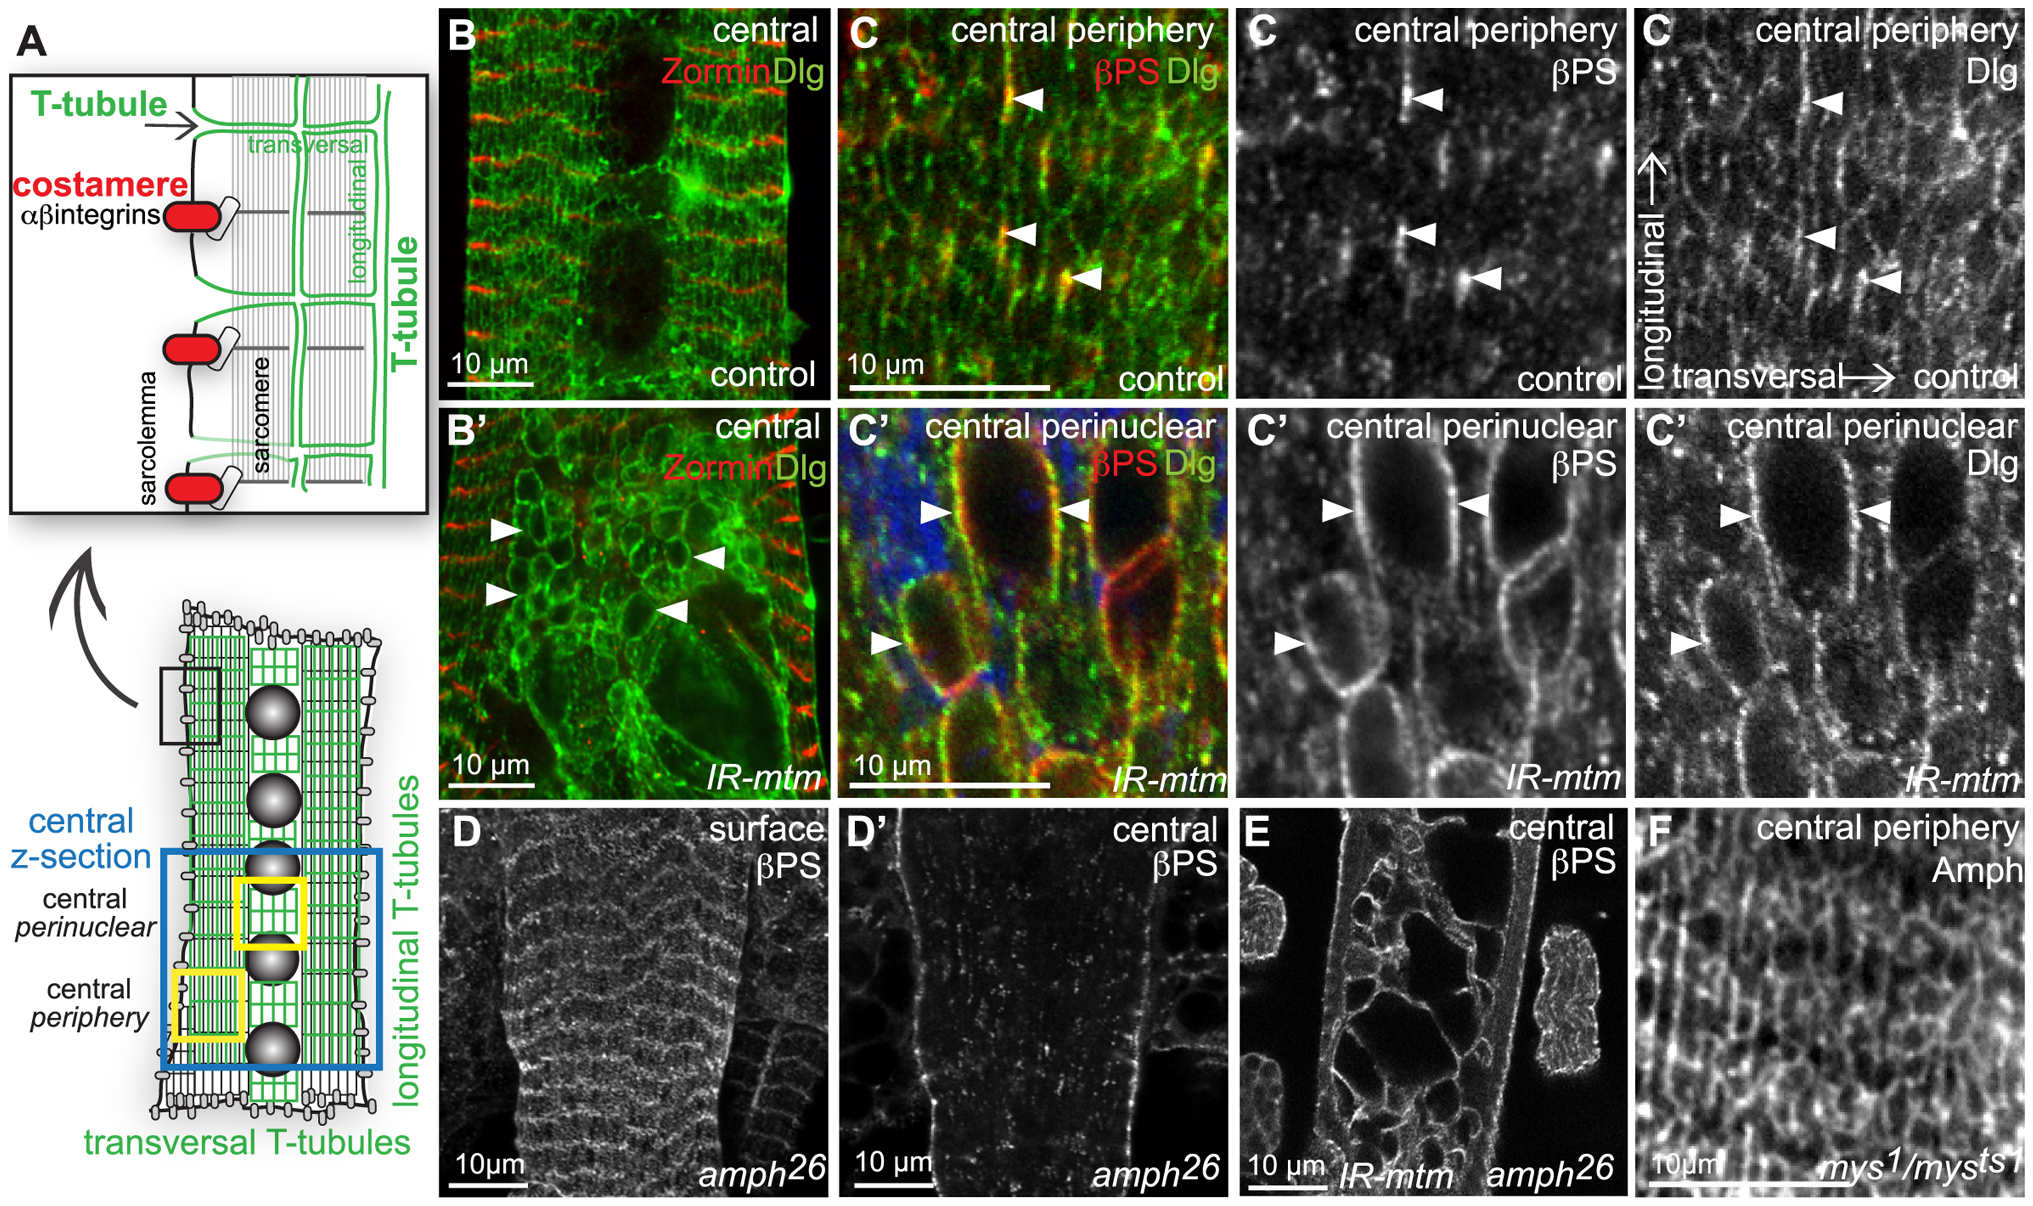 Integrin adhesions are independent of T-tubules, but share an <i>mtm</i> function for maintained organization.